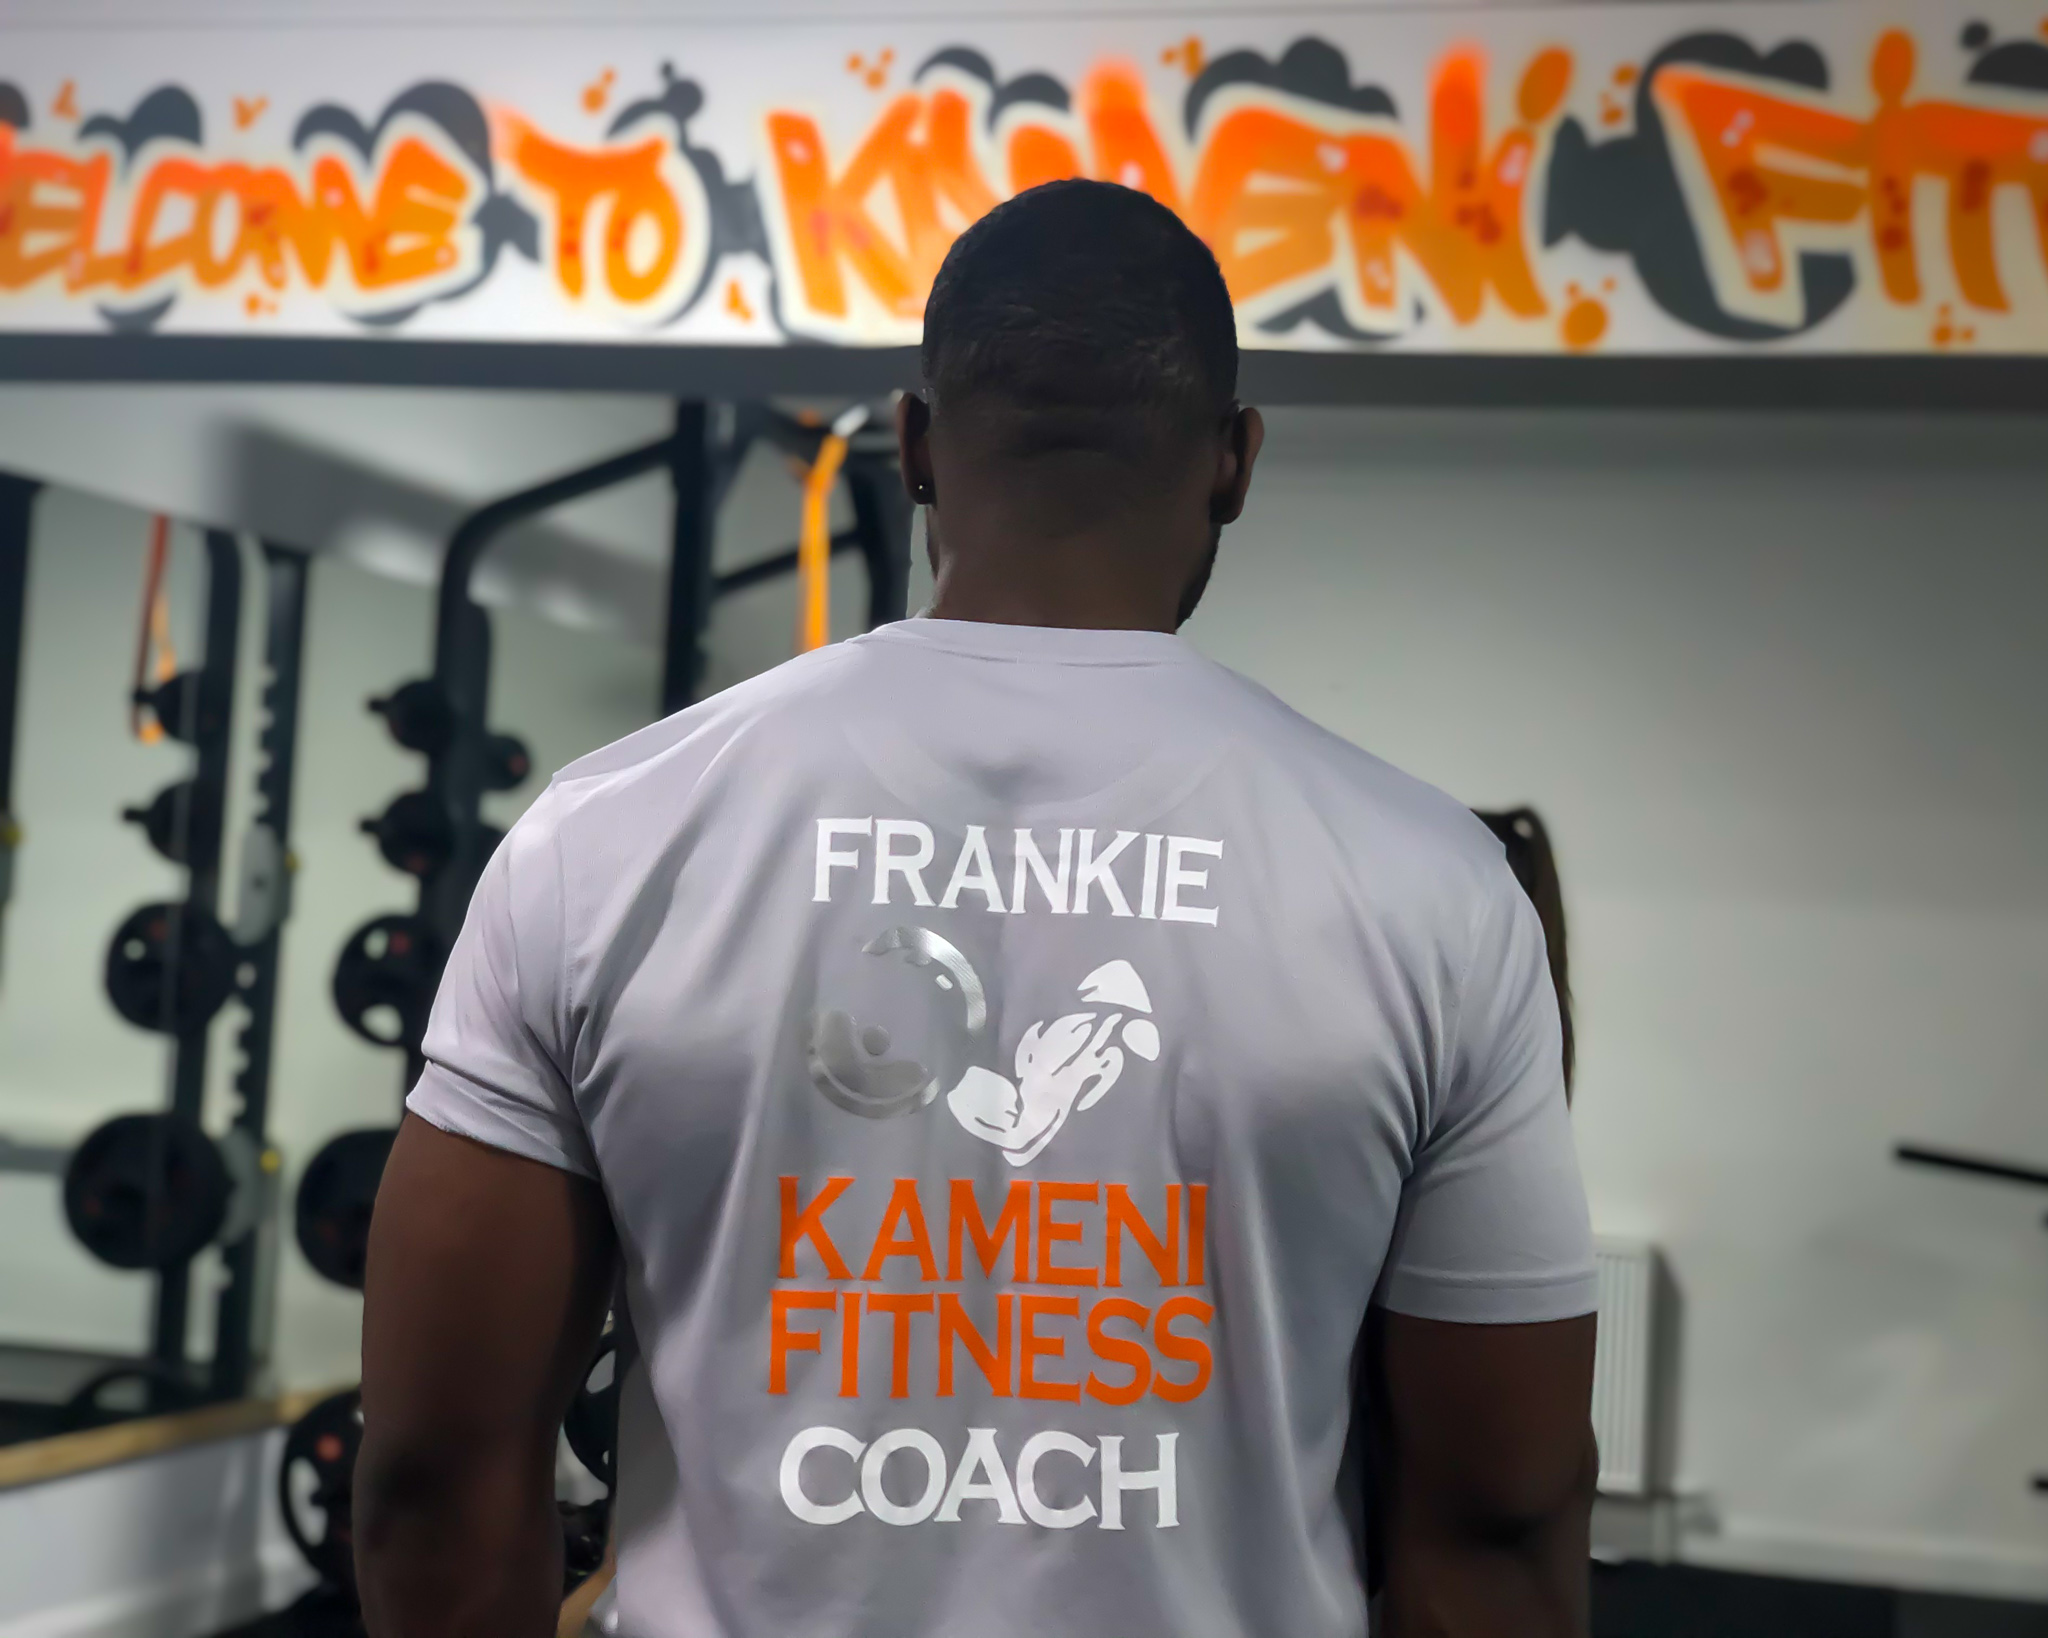 Frank Kameni fitness instructor in his gym